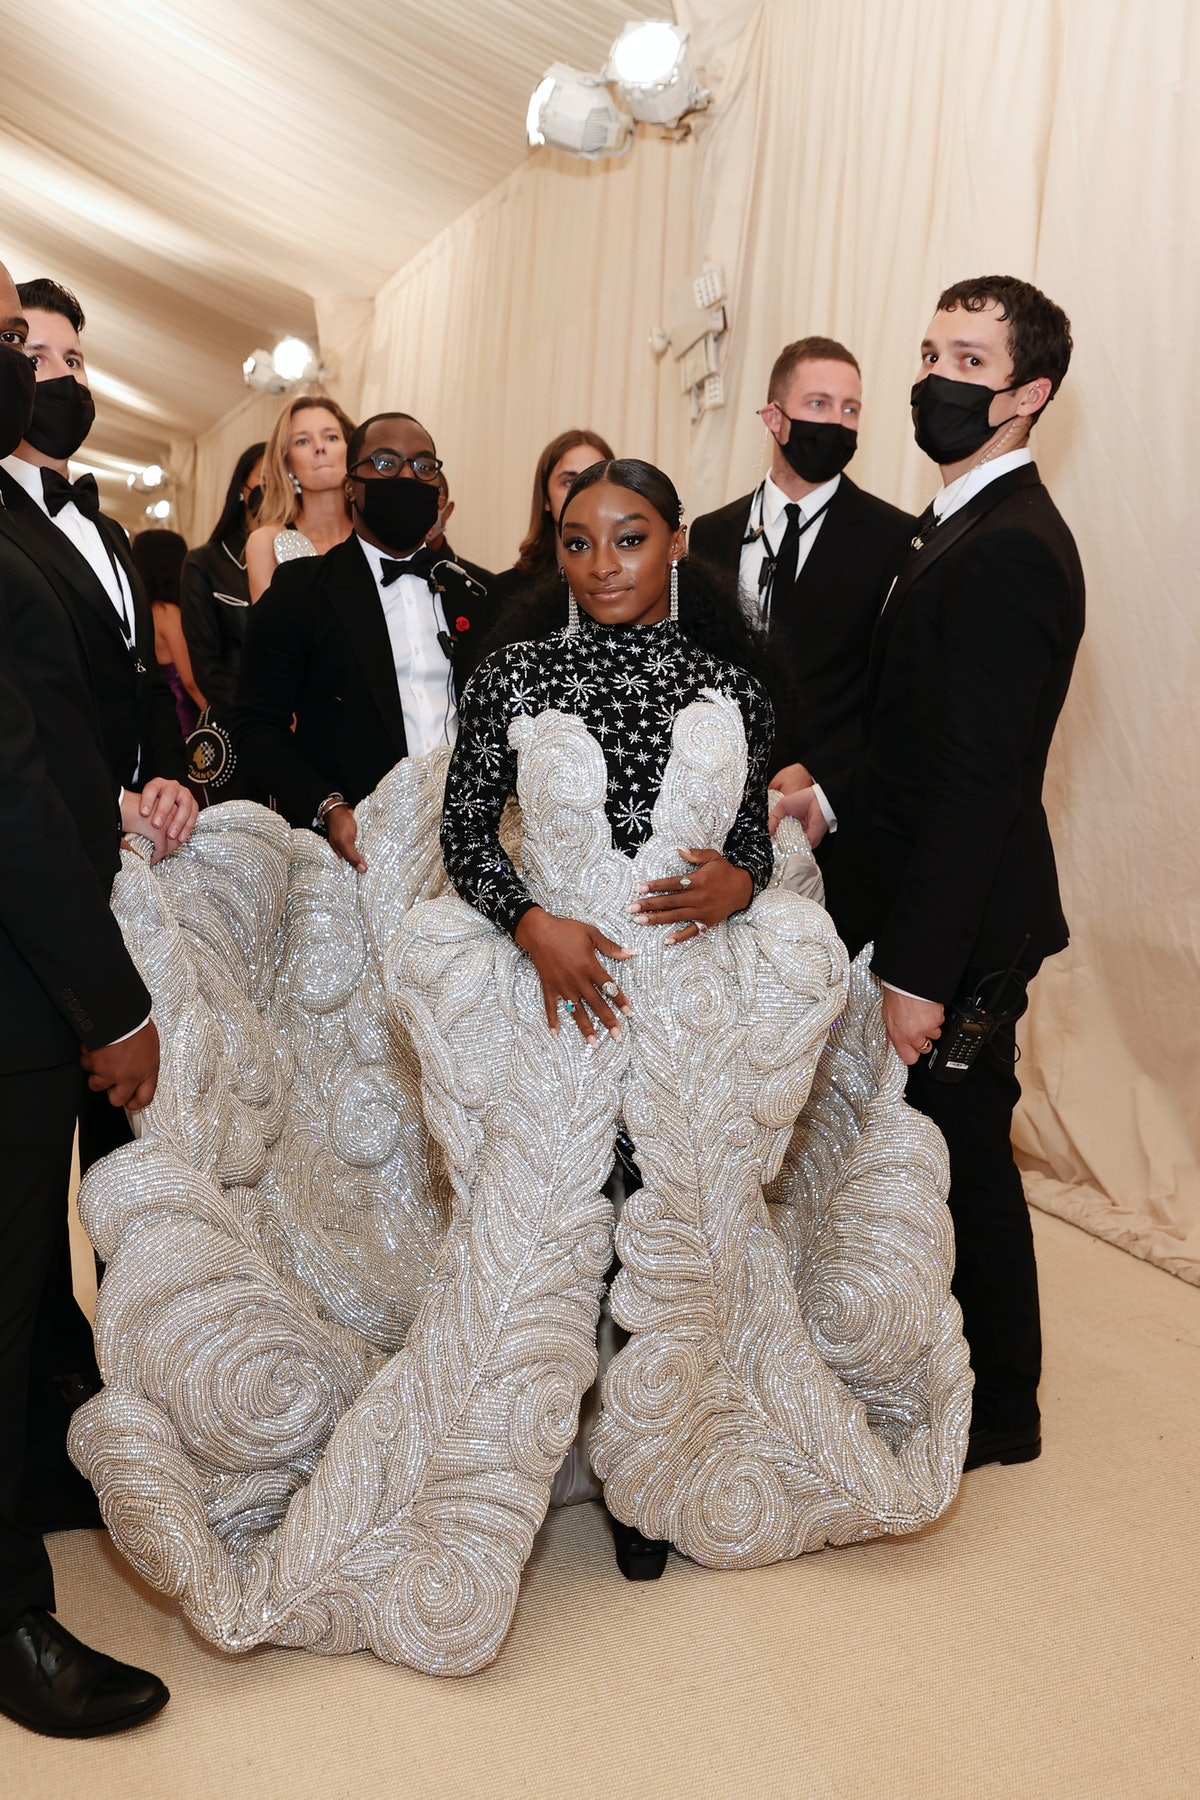 Simone Biles attends The 2021 Met Gala with an entourage to carry her gown